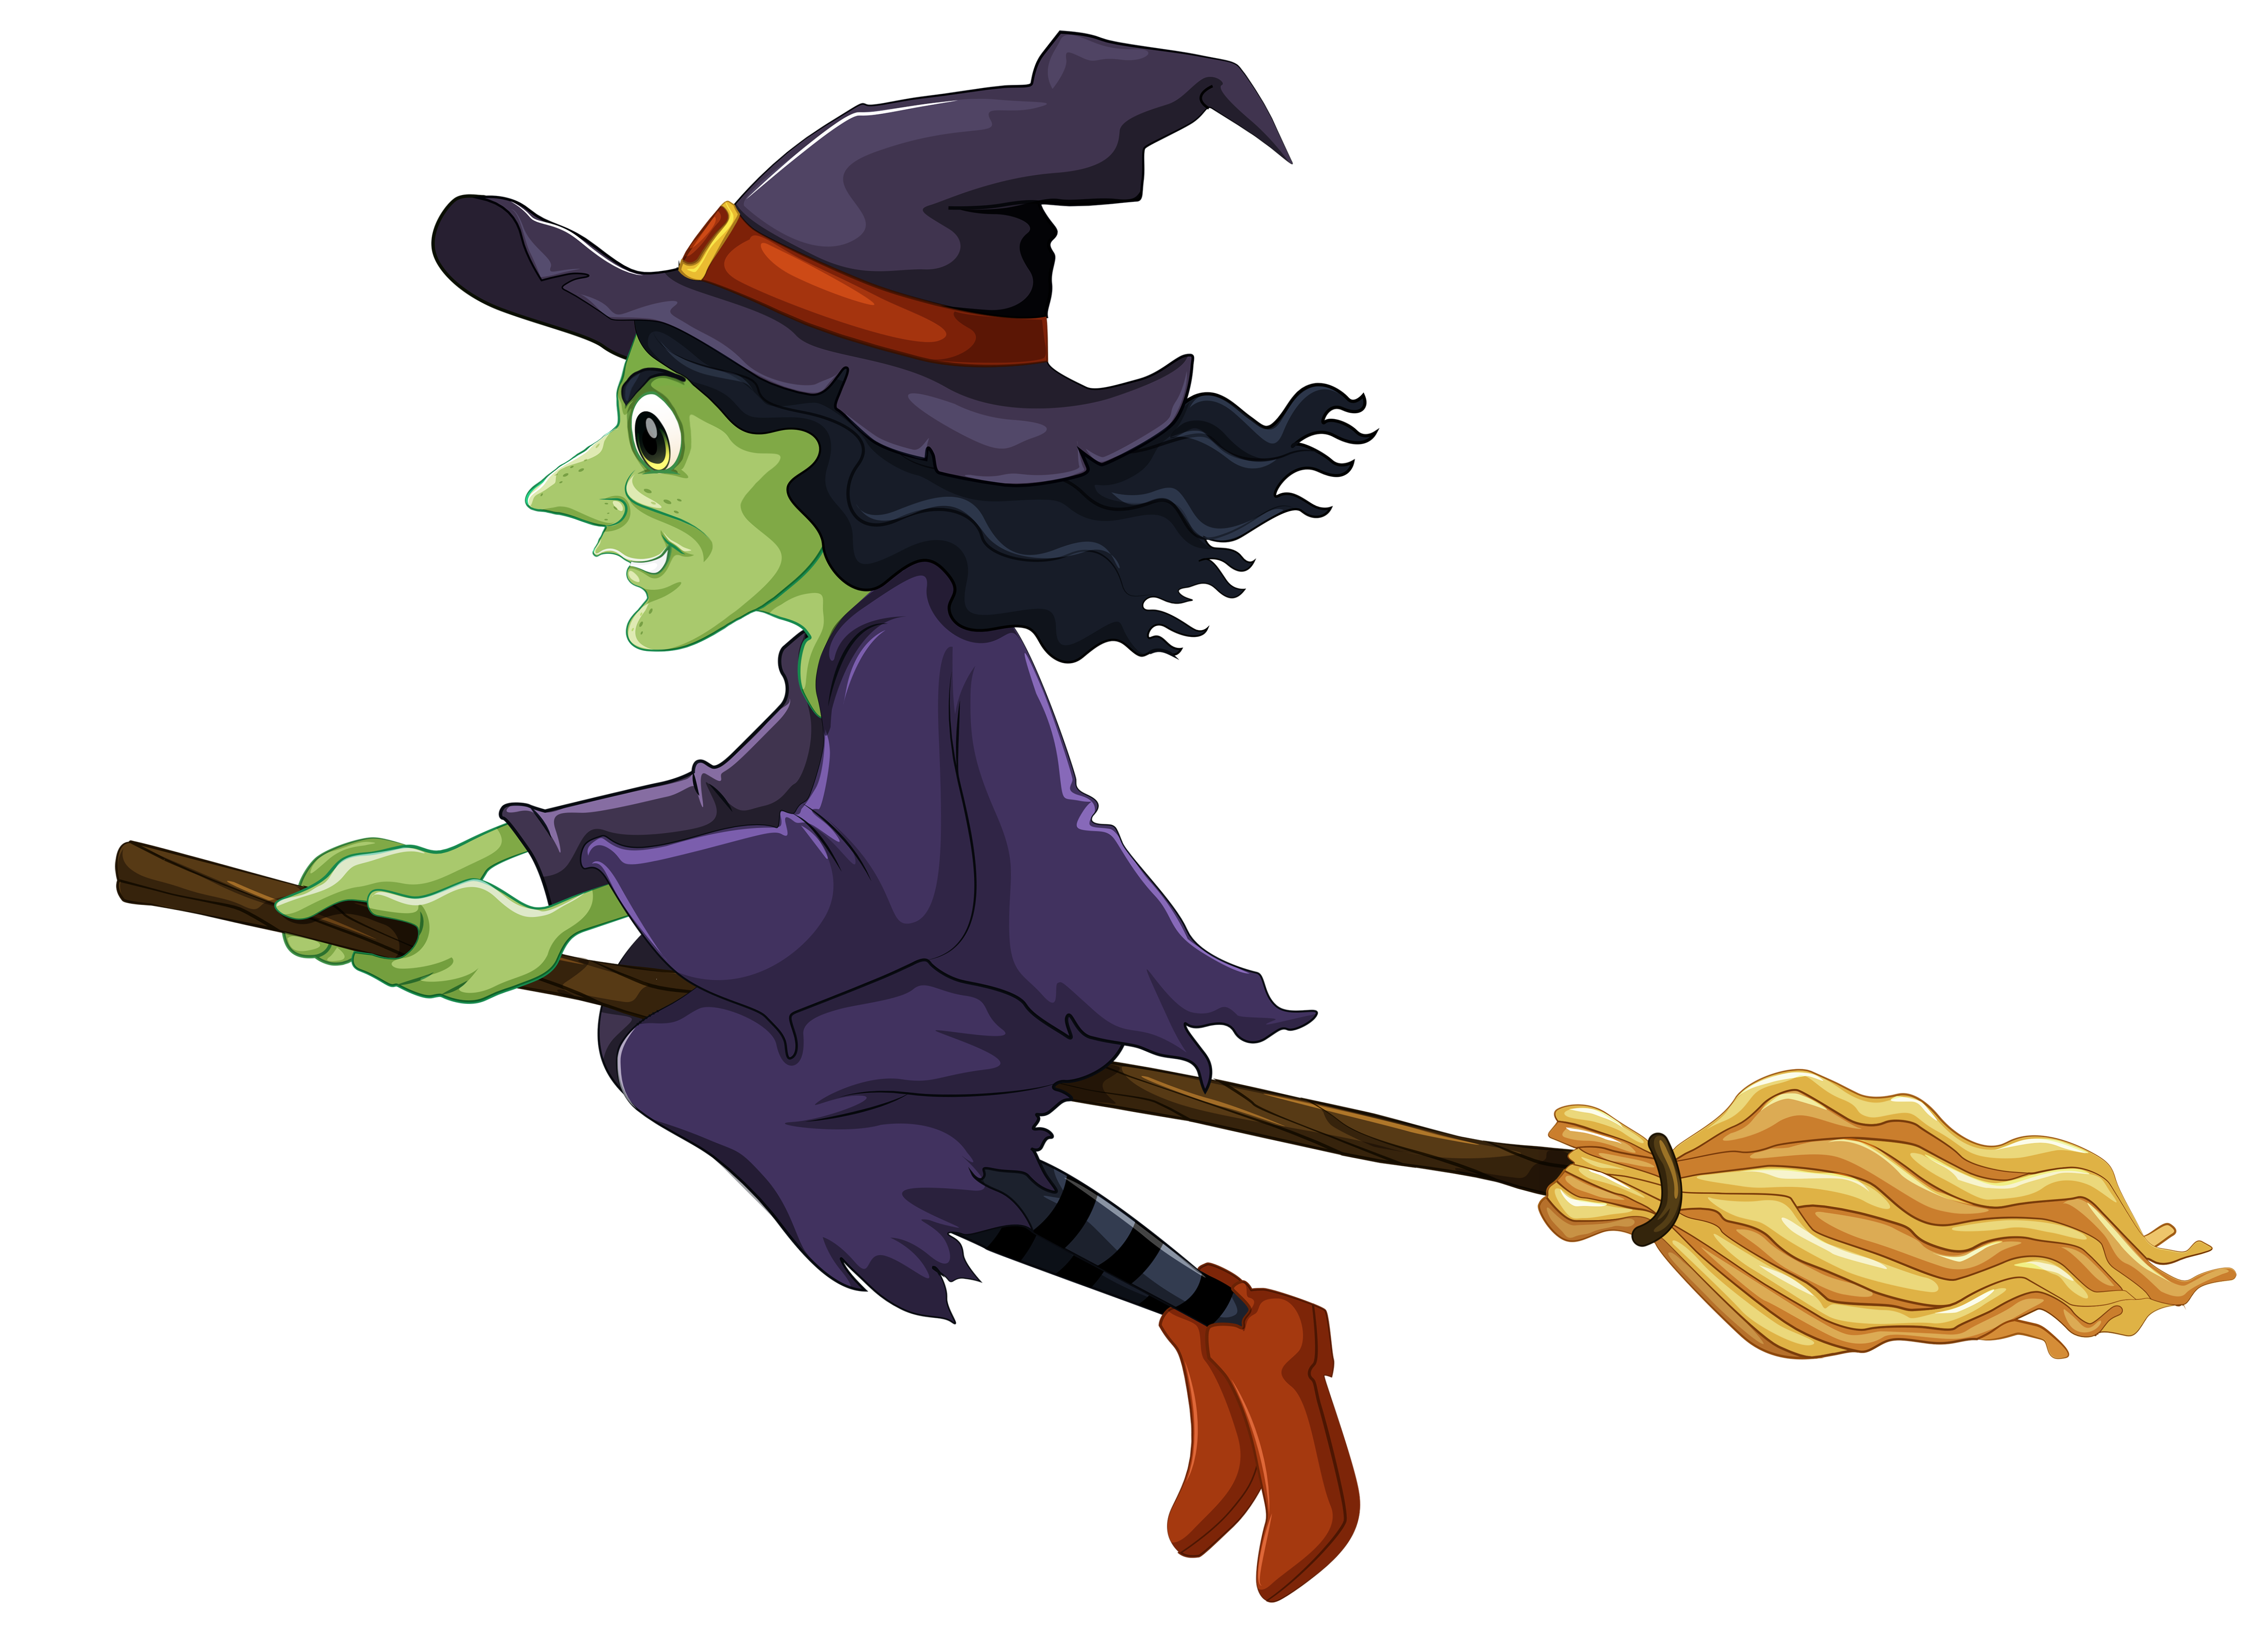 Witch halloween clipart graphic free download Halloween Witch Clipart | Gallery Yopriceville - High-Quality ... graphic free download